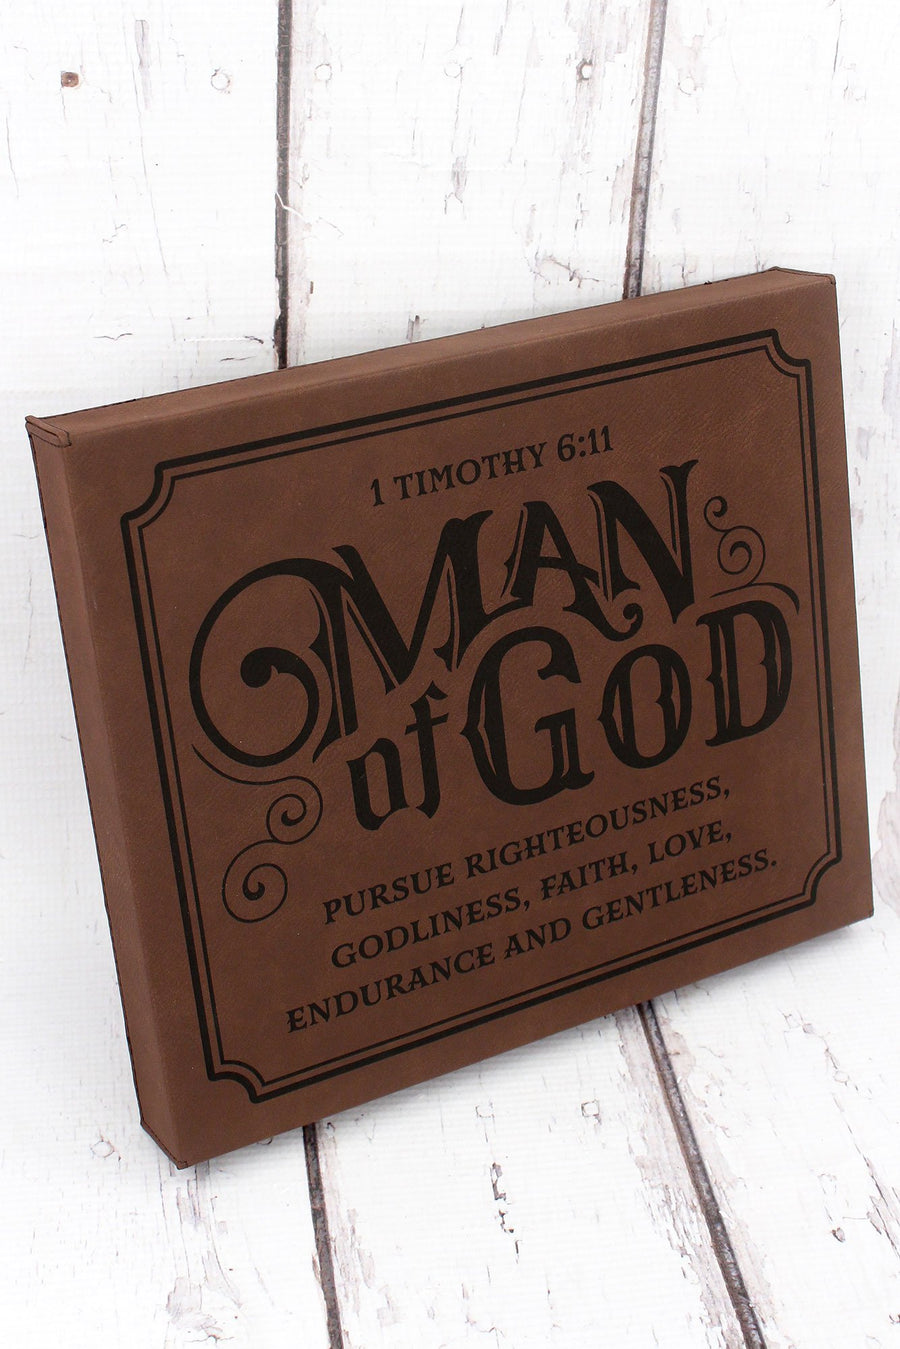 1 Timothy 6:11 'Man of God' Wall Plaque